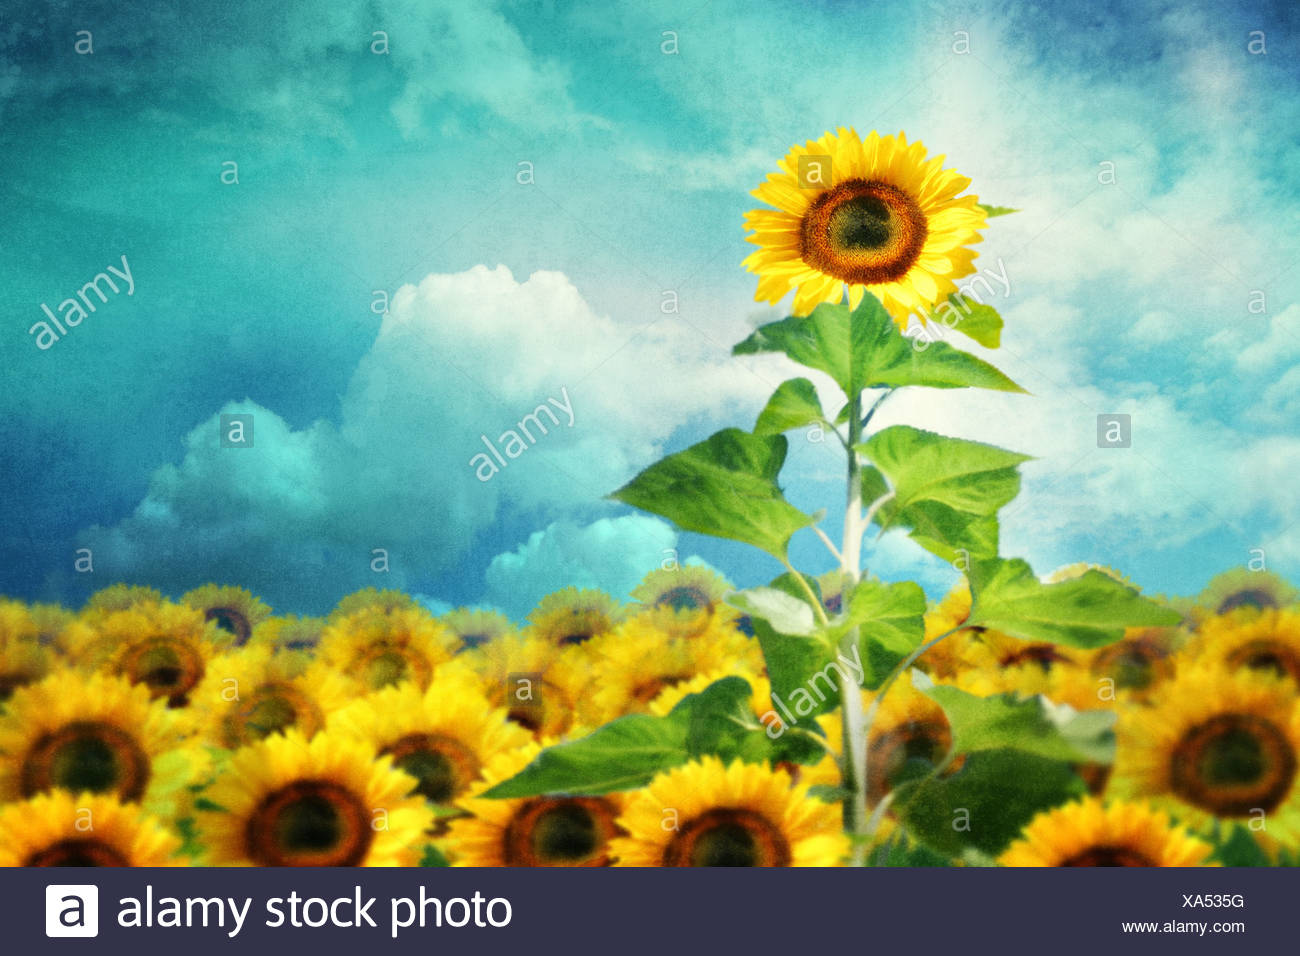 concept image of a tall sunflower standing out from the rest - Stock Image